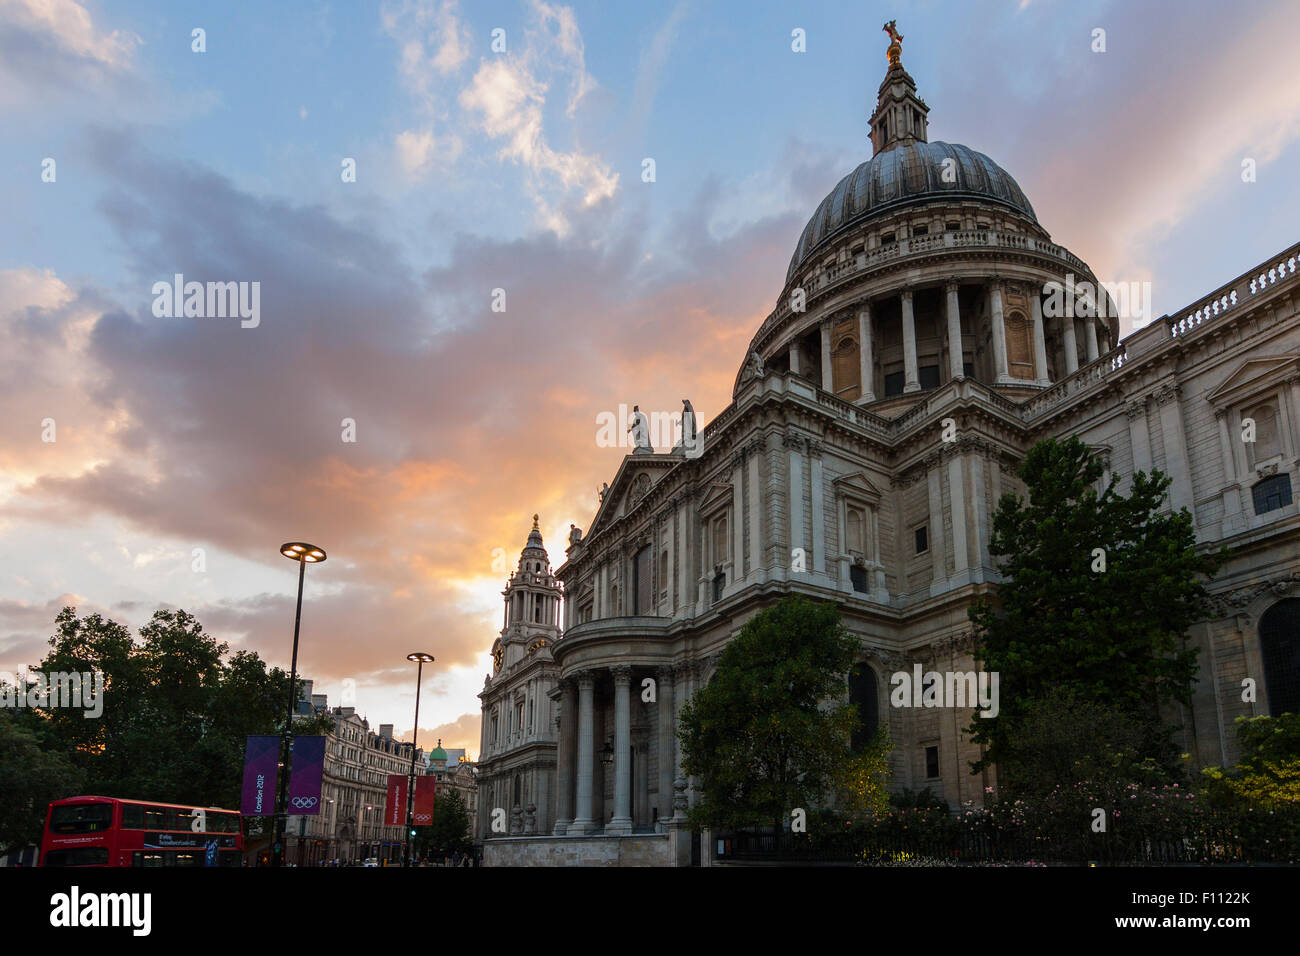 St Paul's Cathedral, London, England, United Kingdom Stock Photo